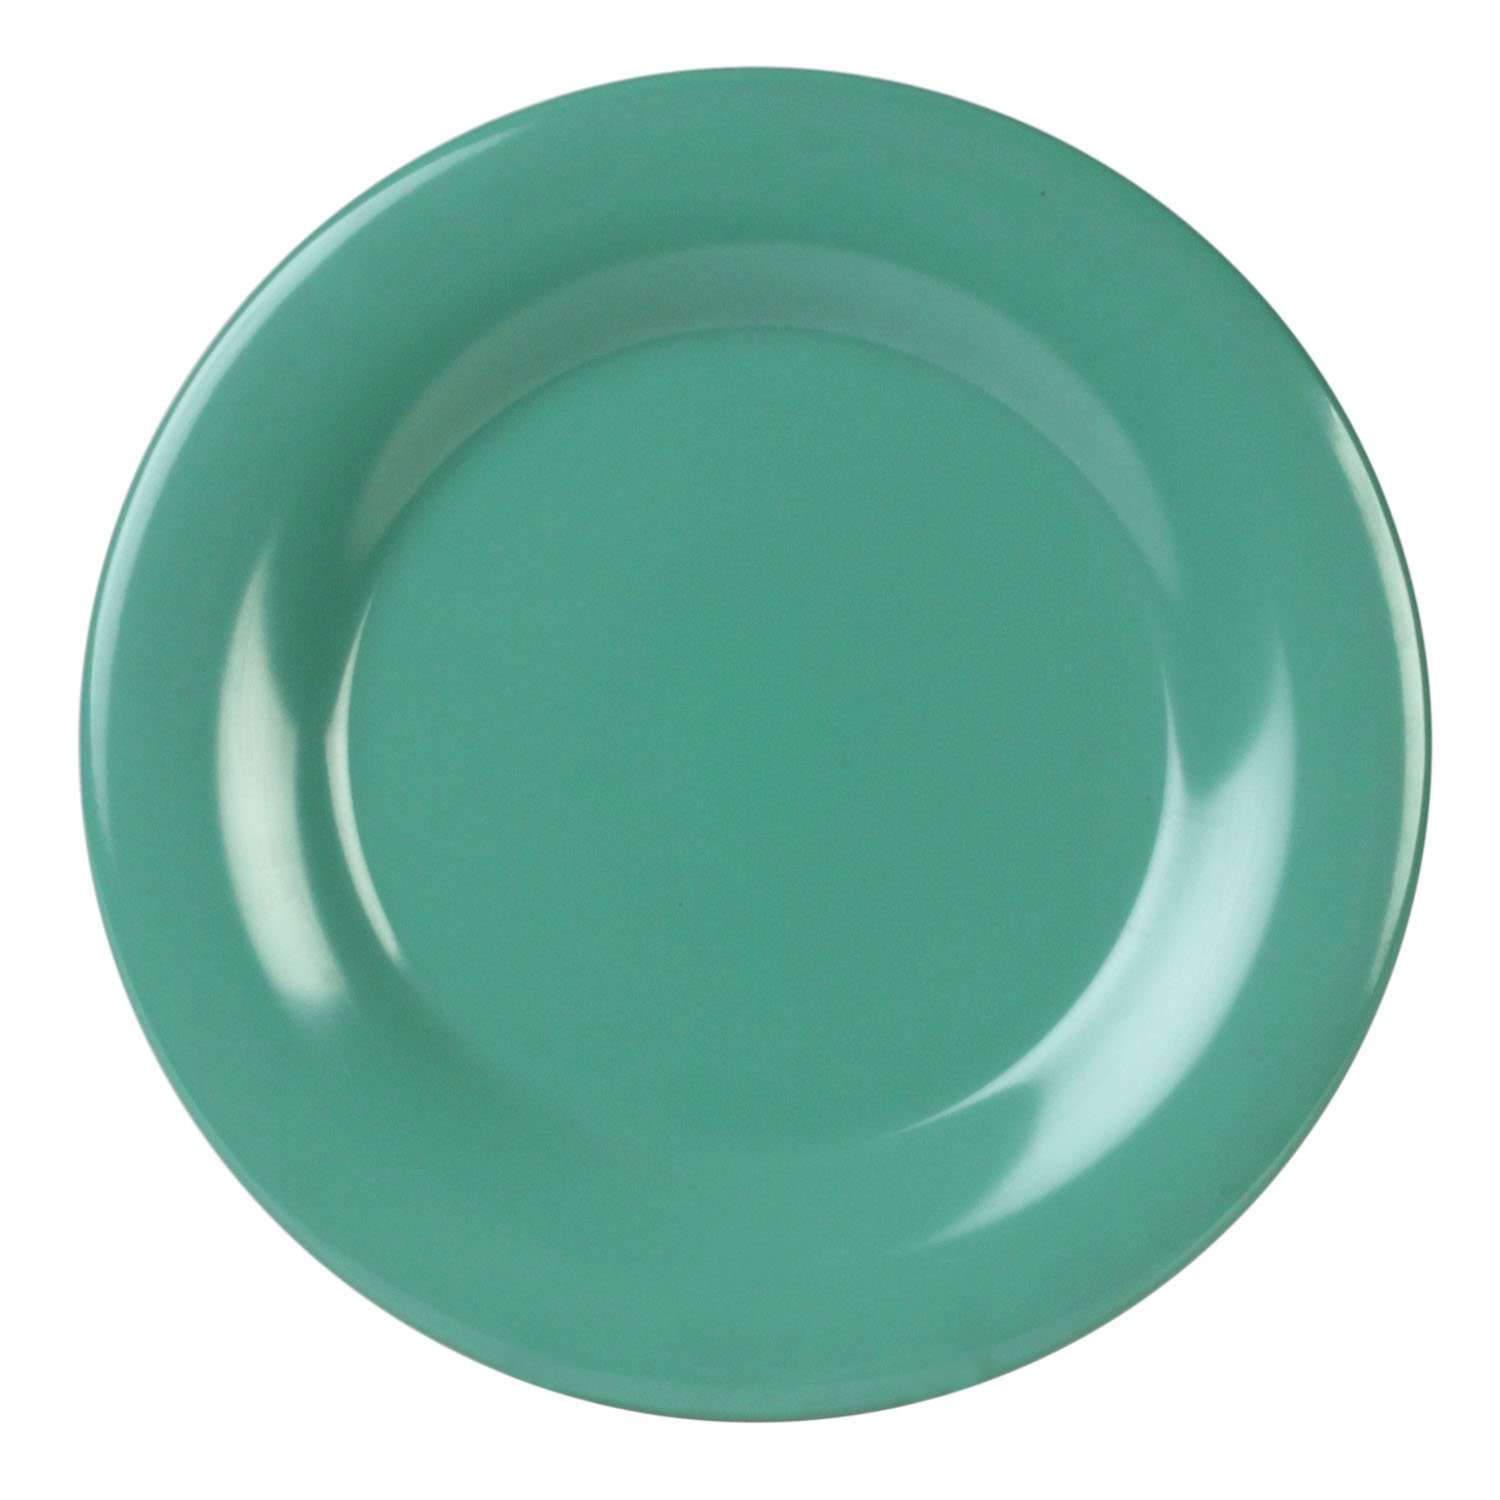 Global Goodwill Coleur Series 12-Piece Wide Rim Plate, 6-1/2-Inch, Coleur Green